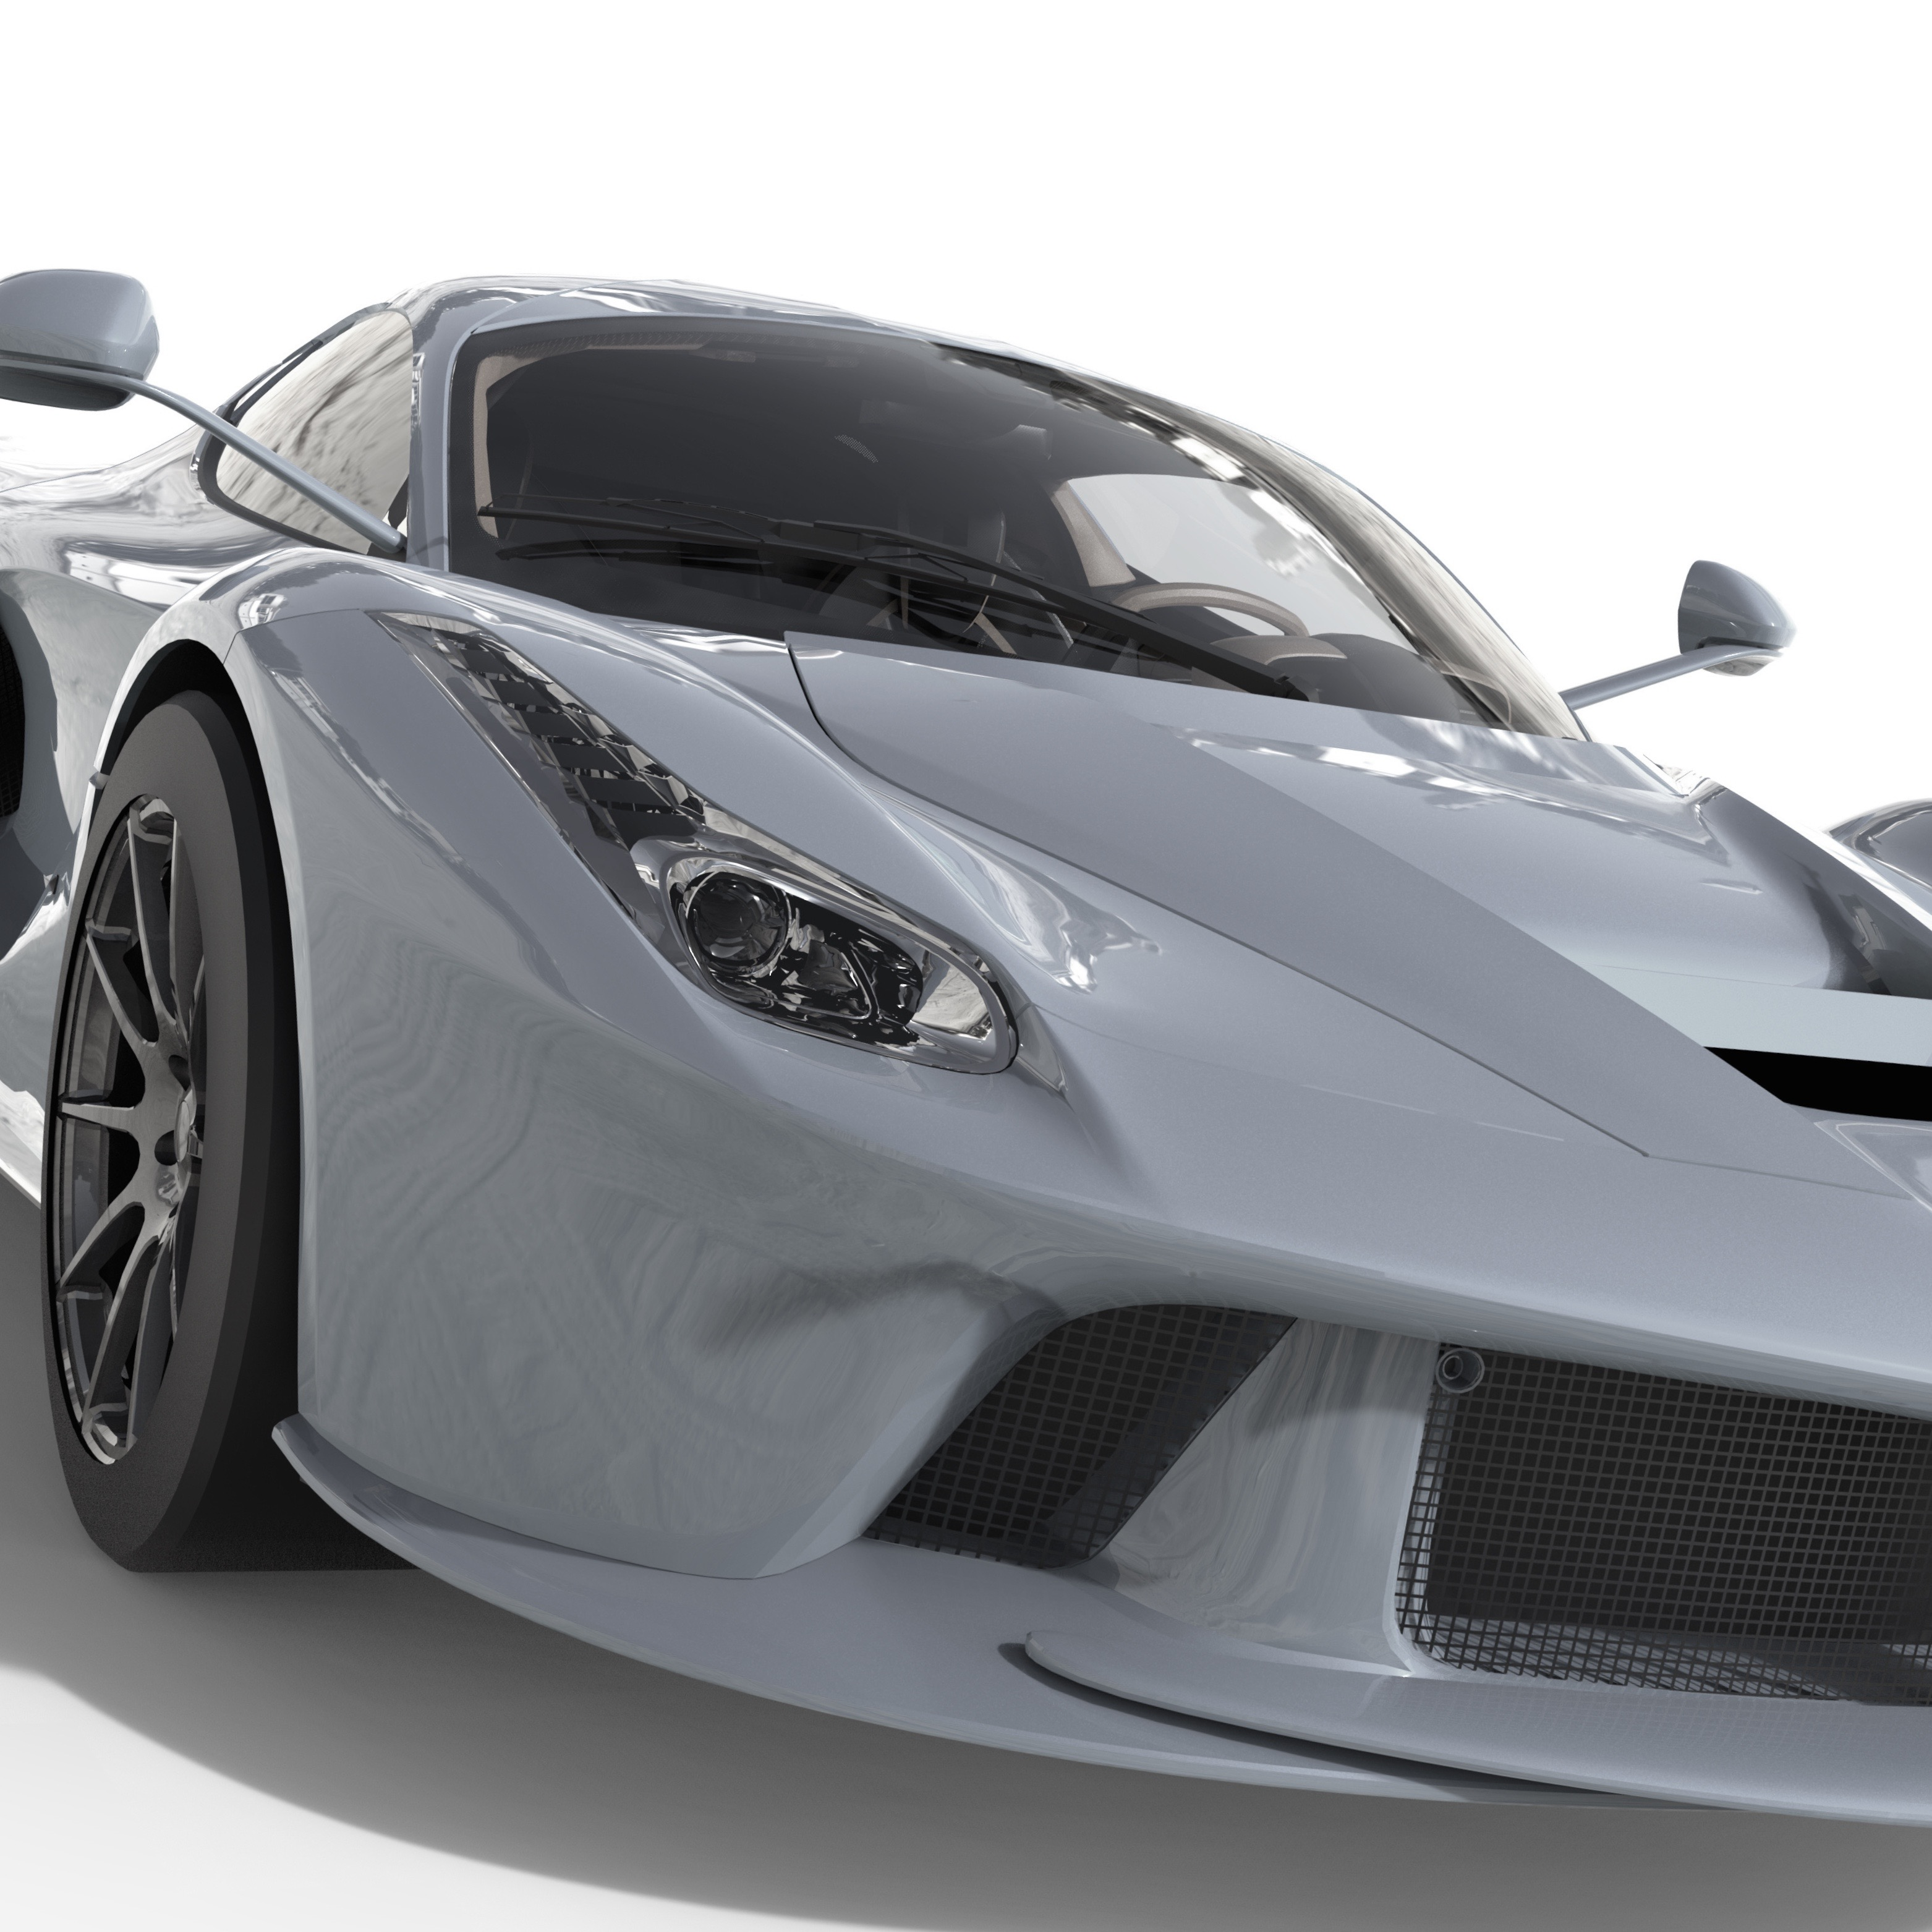 Sports Car Front View. The Image Of A Sports Blue Car On A White Background.  3d Illustration.